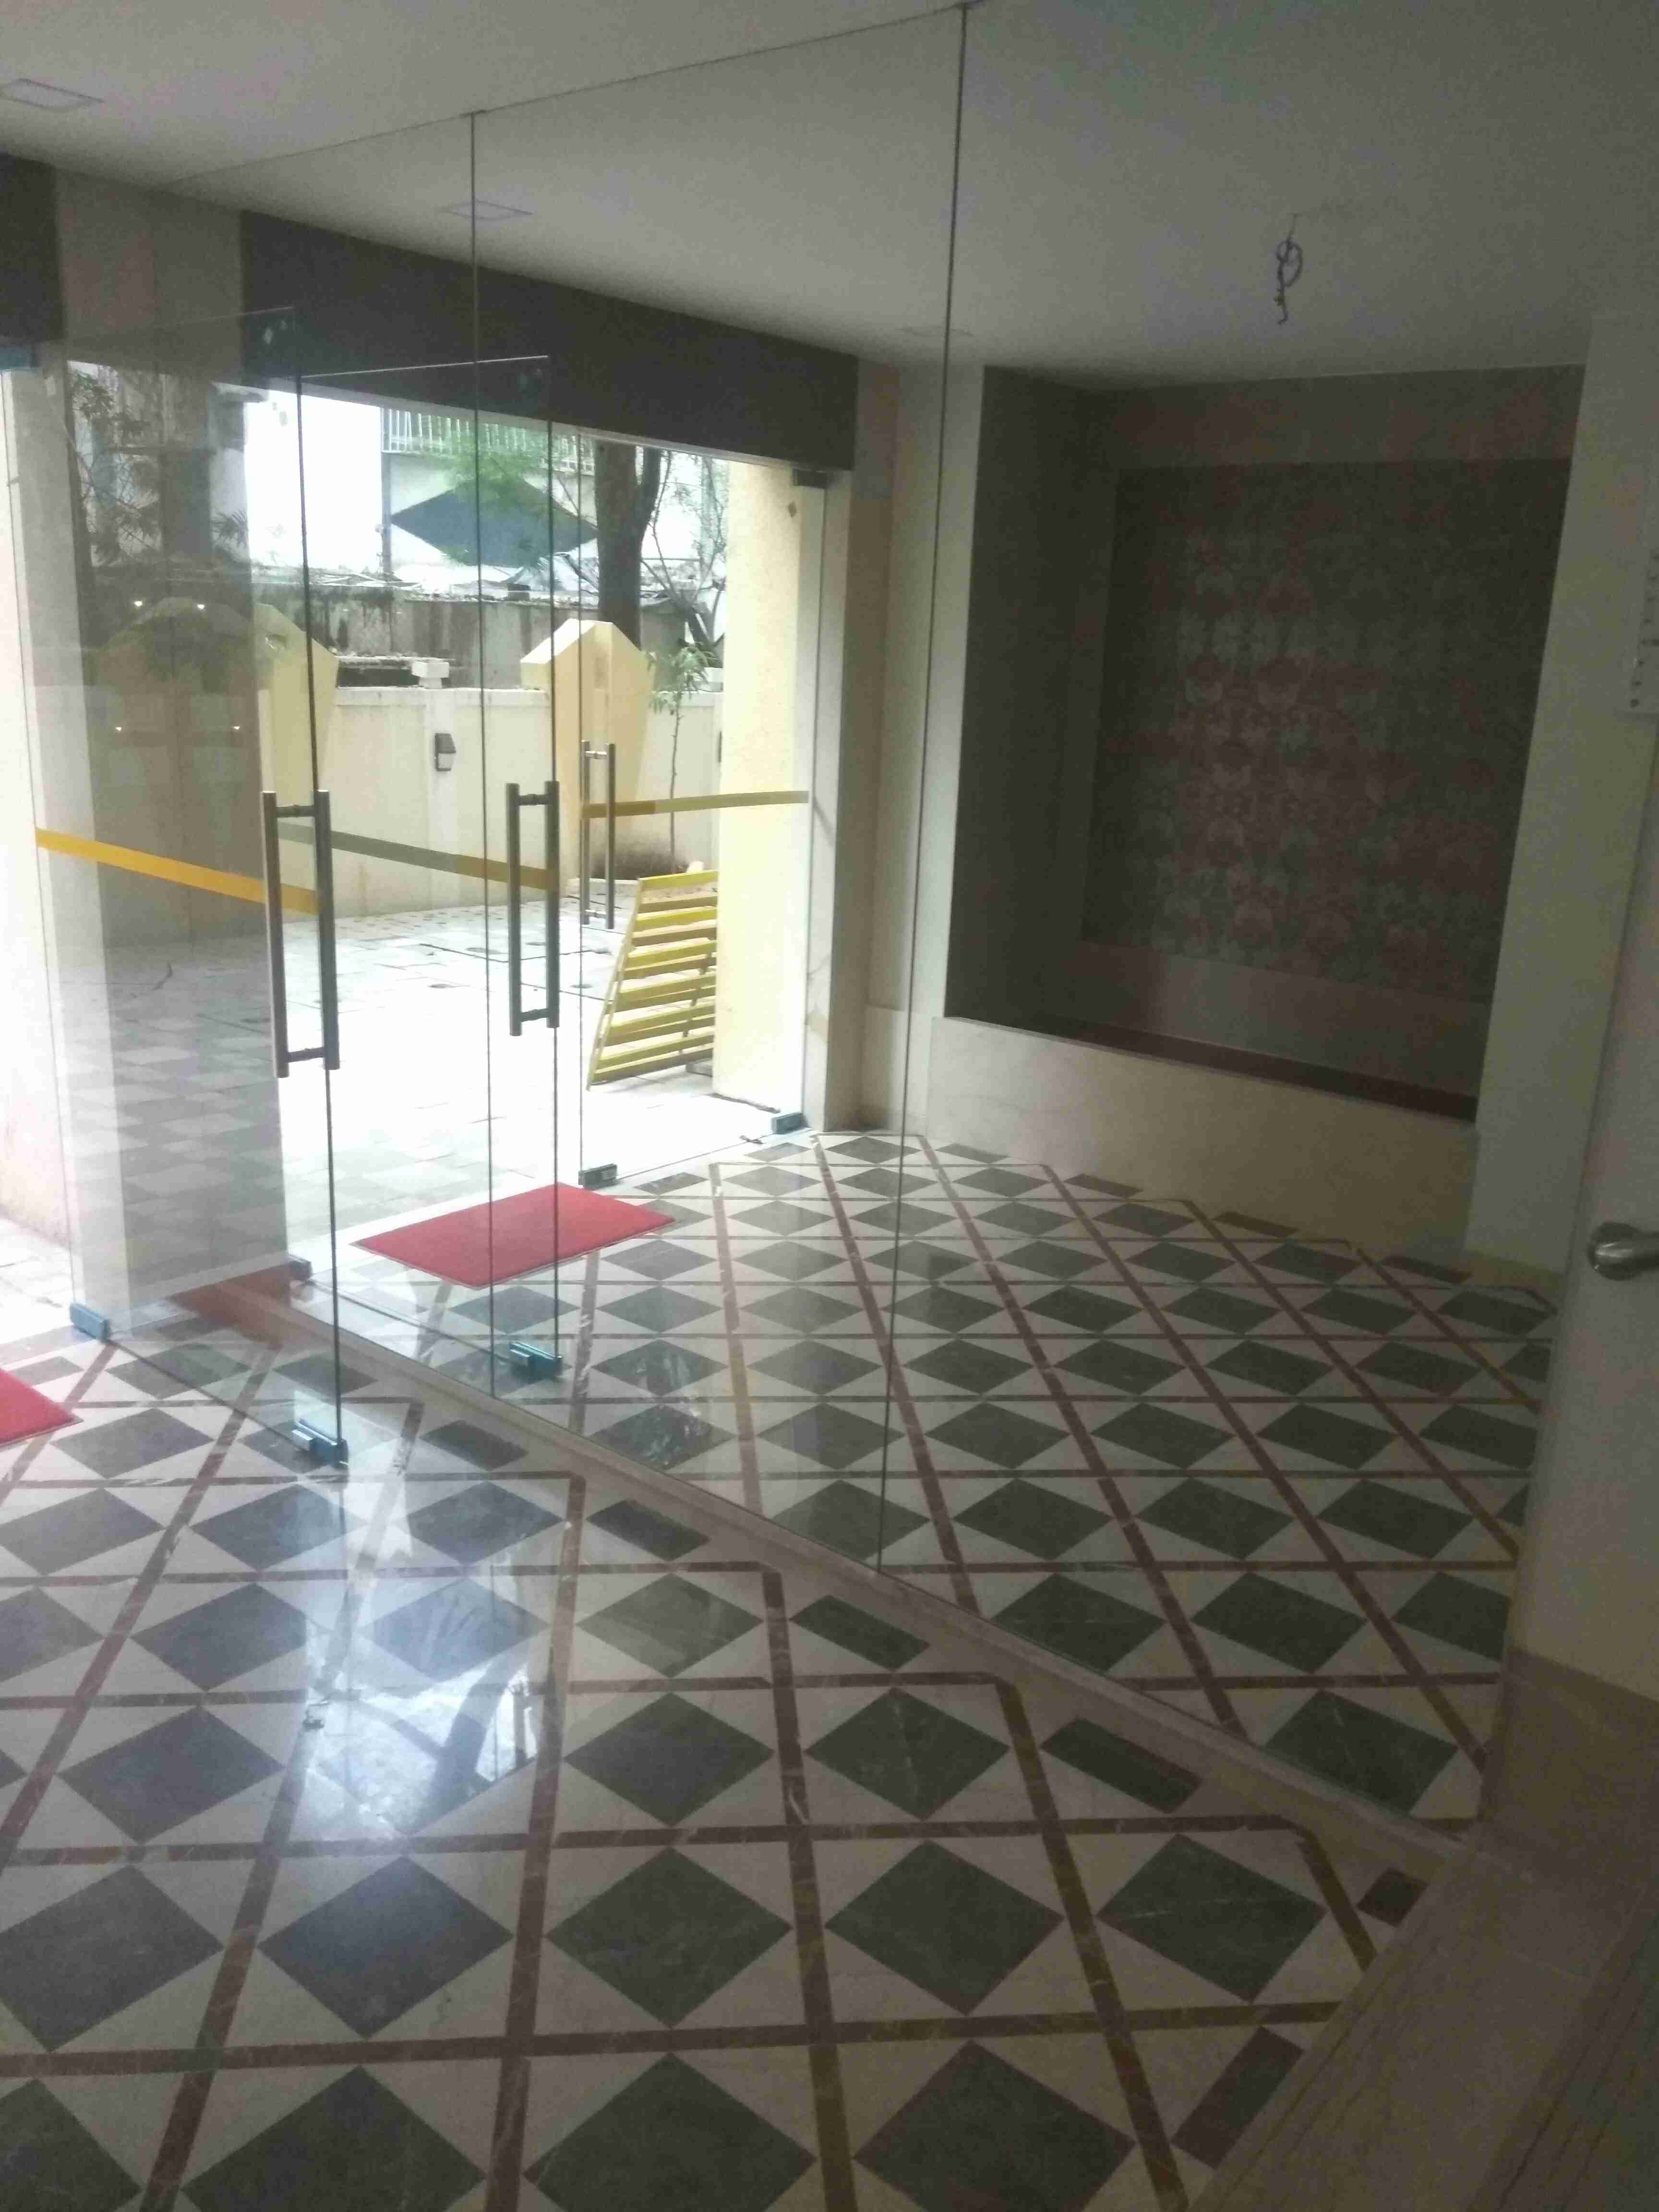 1500 sq ft 3BHK 3BHK+3T (1,500 sq ft) Property By R R Propertiees In Project, Malviya Road